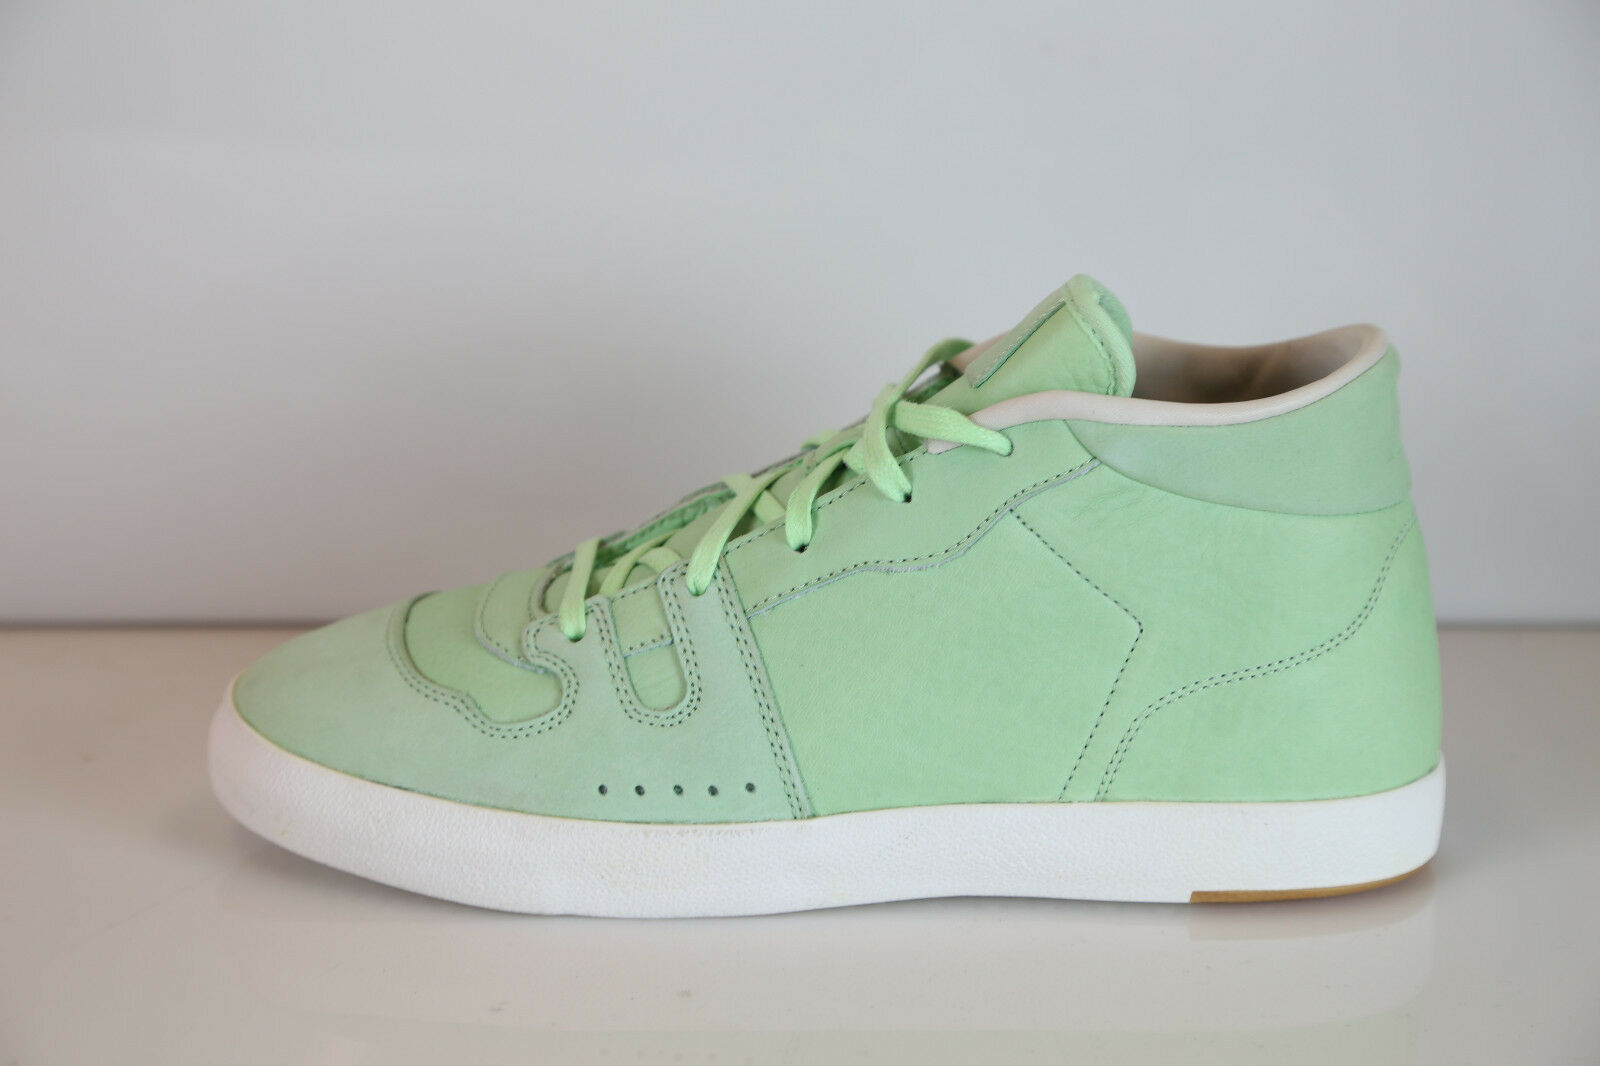 Nike Manor Premium NSW Fresh Mint Summit Weiß 515018-300 9